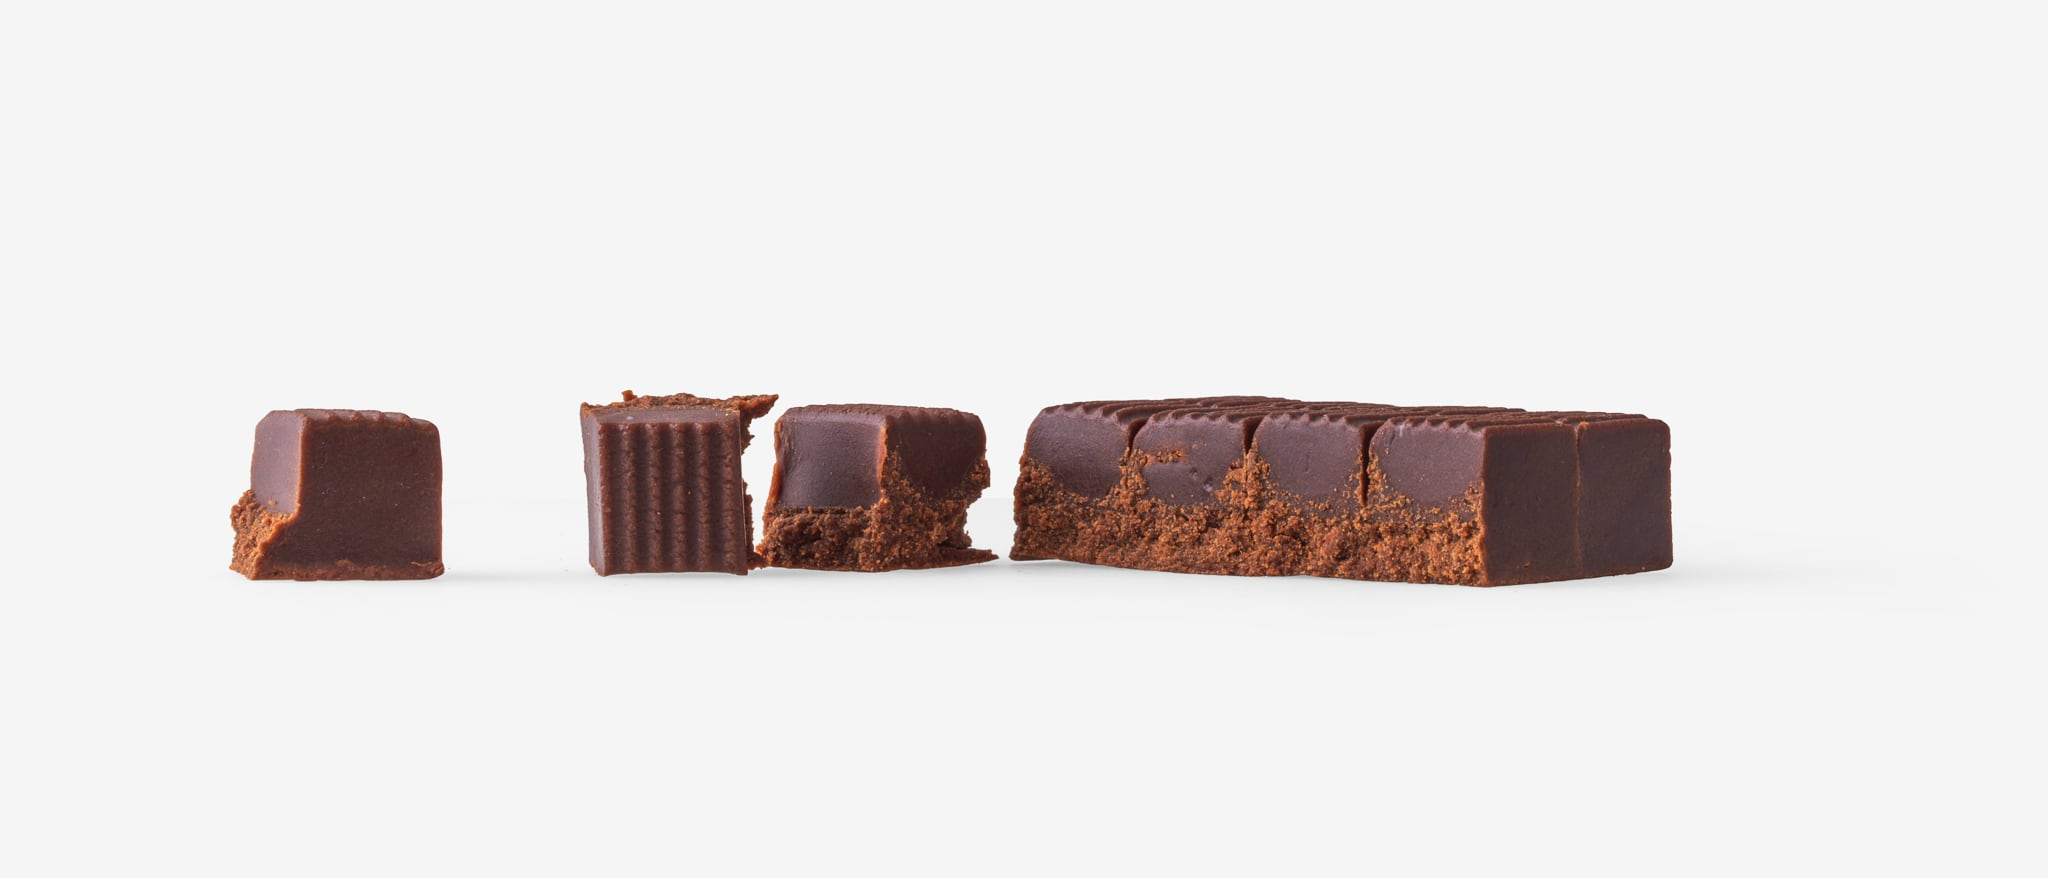 Chocolate PSD image with transparent background